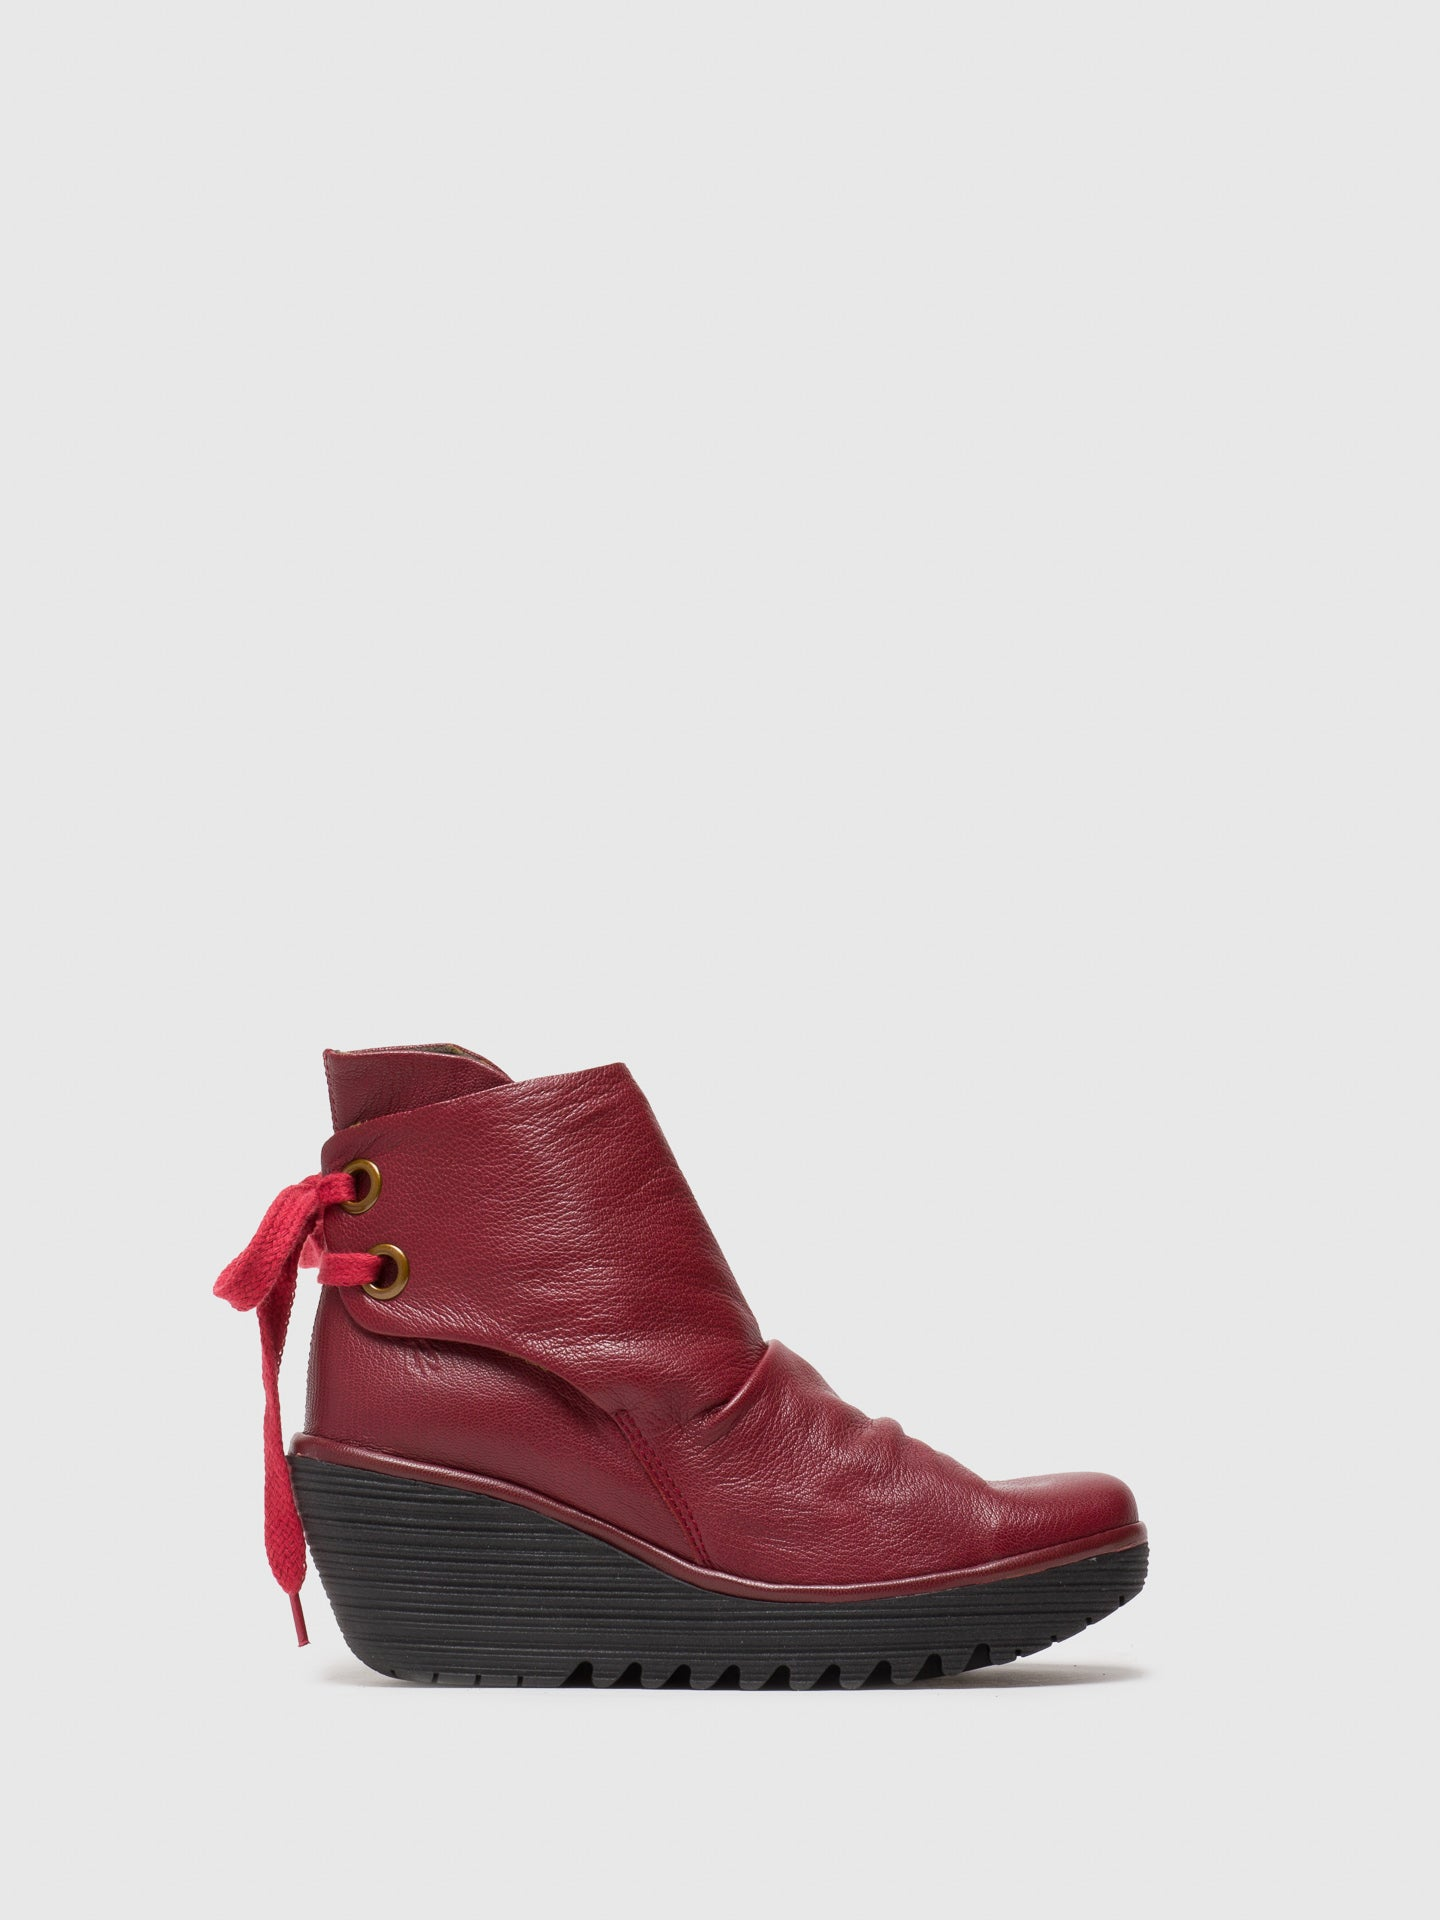 Fly London DarkRed Wedge Ankle Boots